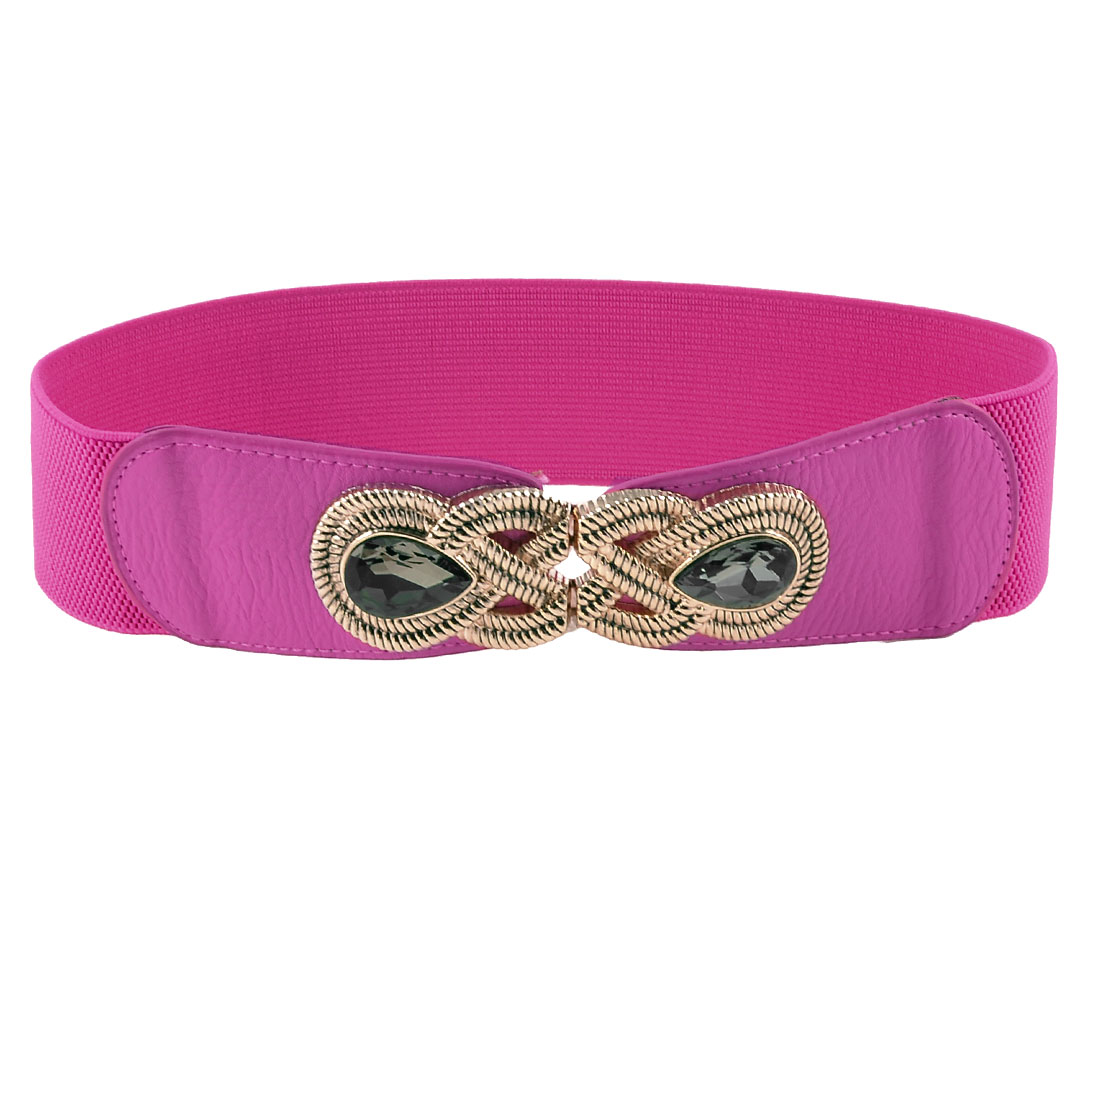 Lady Metal Interlocking Buckle Plastic Crystal Inlaid Fuchsia Elastic Waist Belt